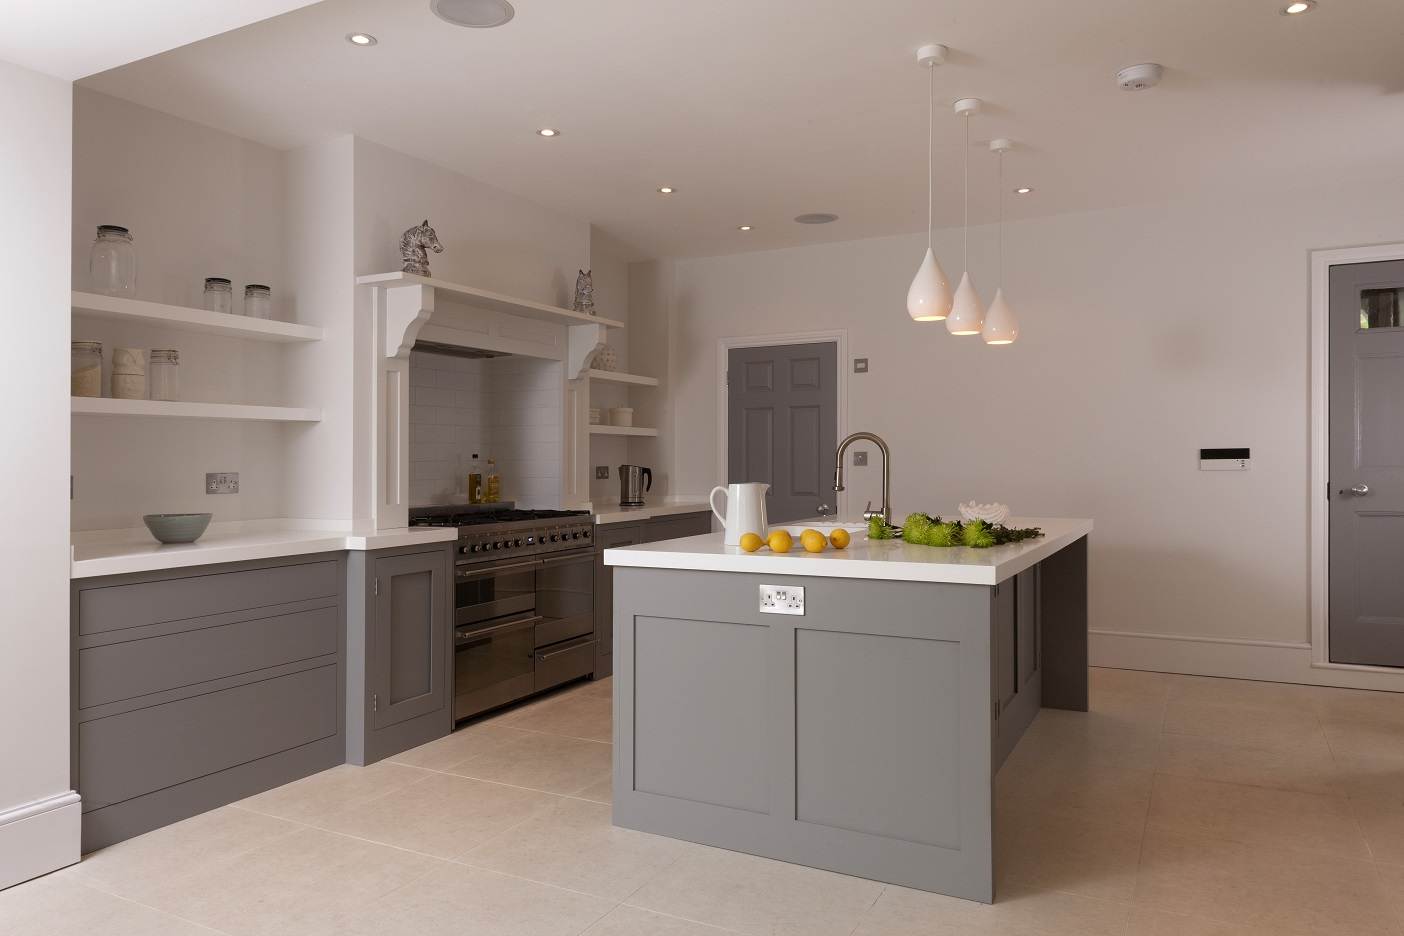 Handleless Shaker in Beautiful Kitchens